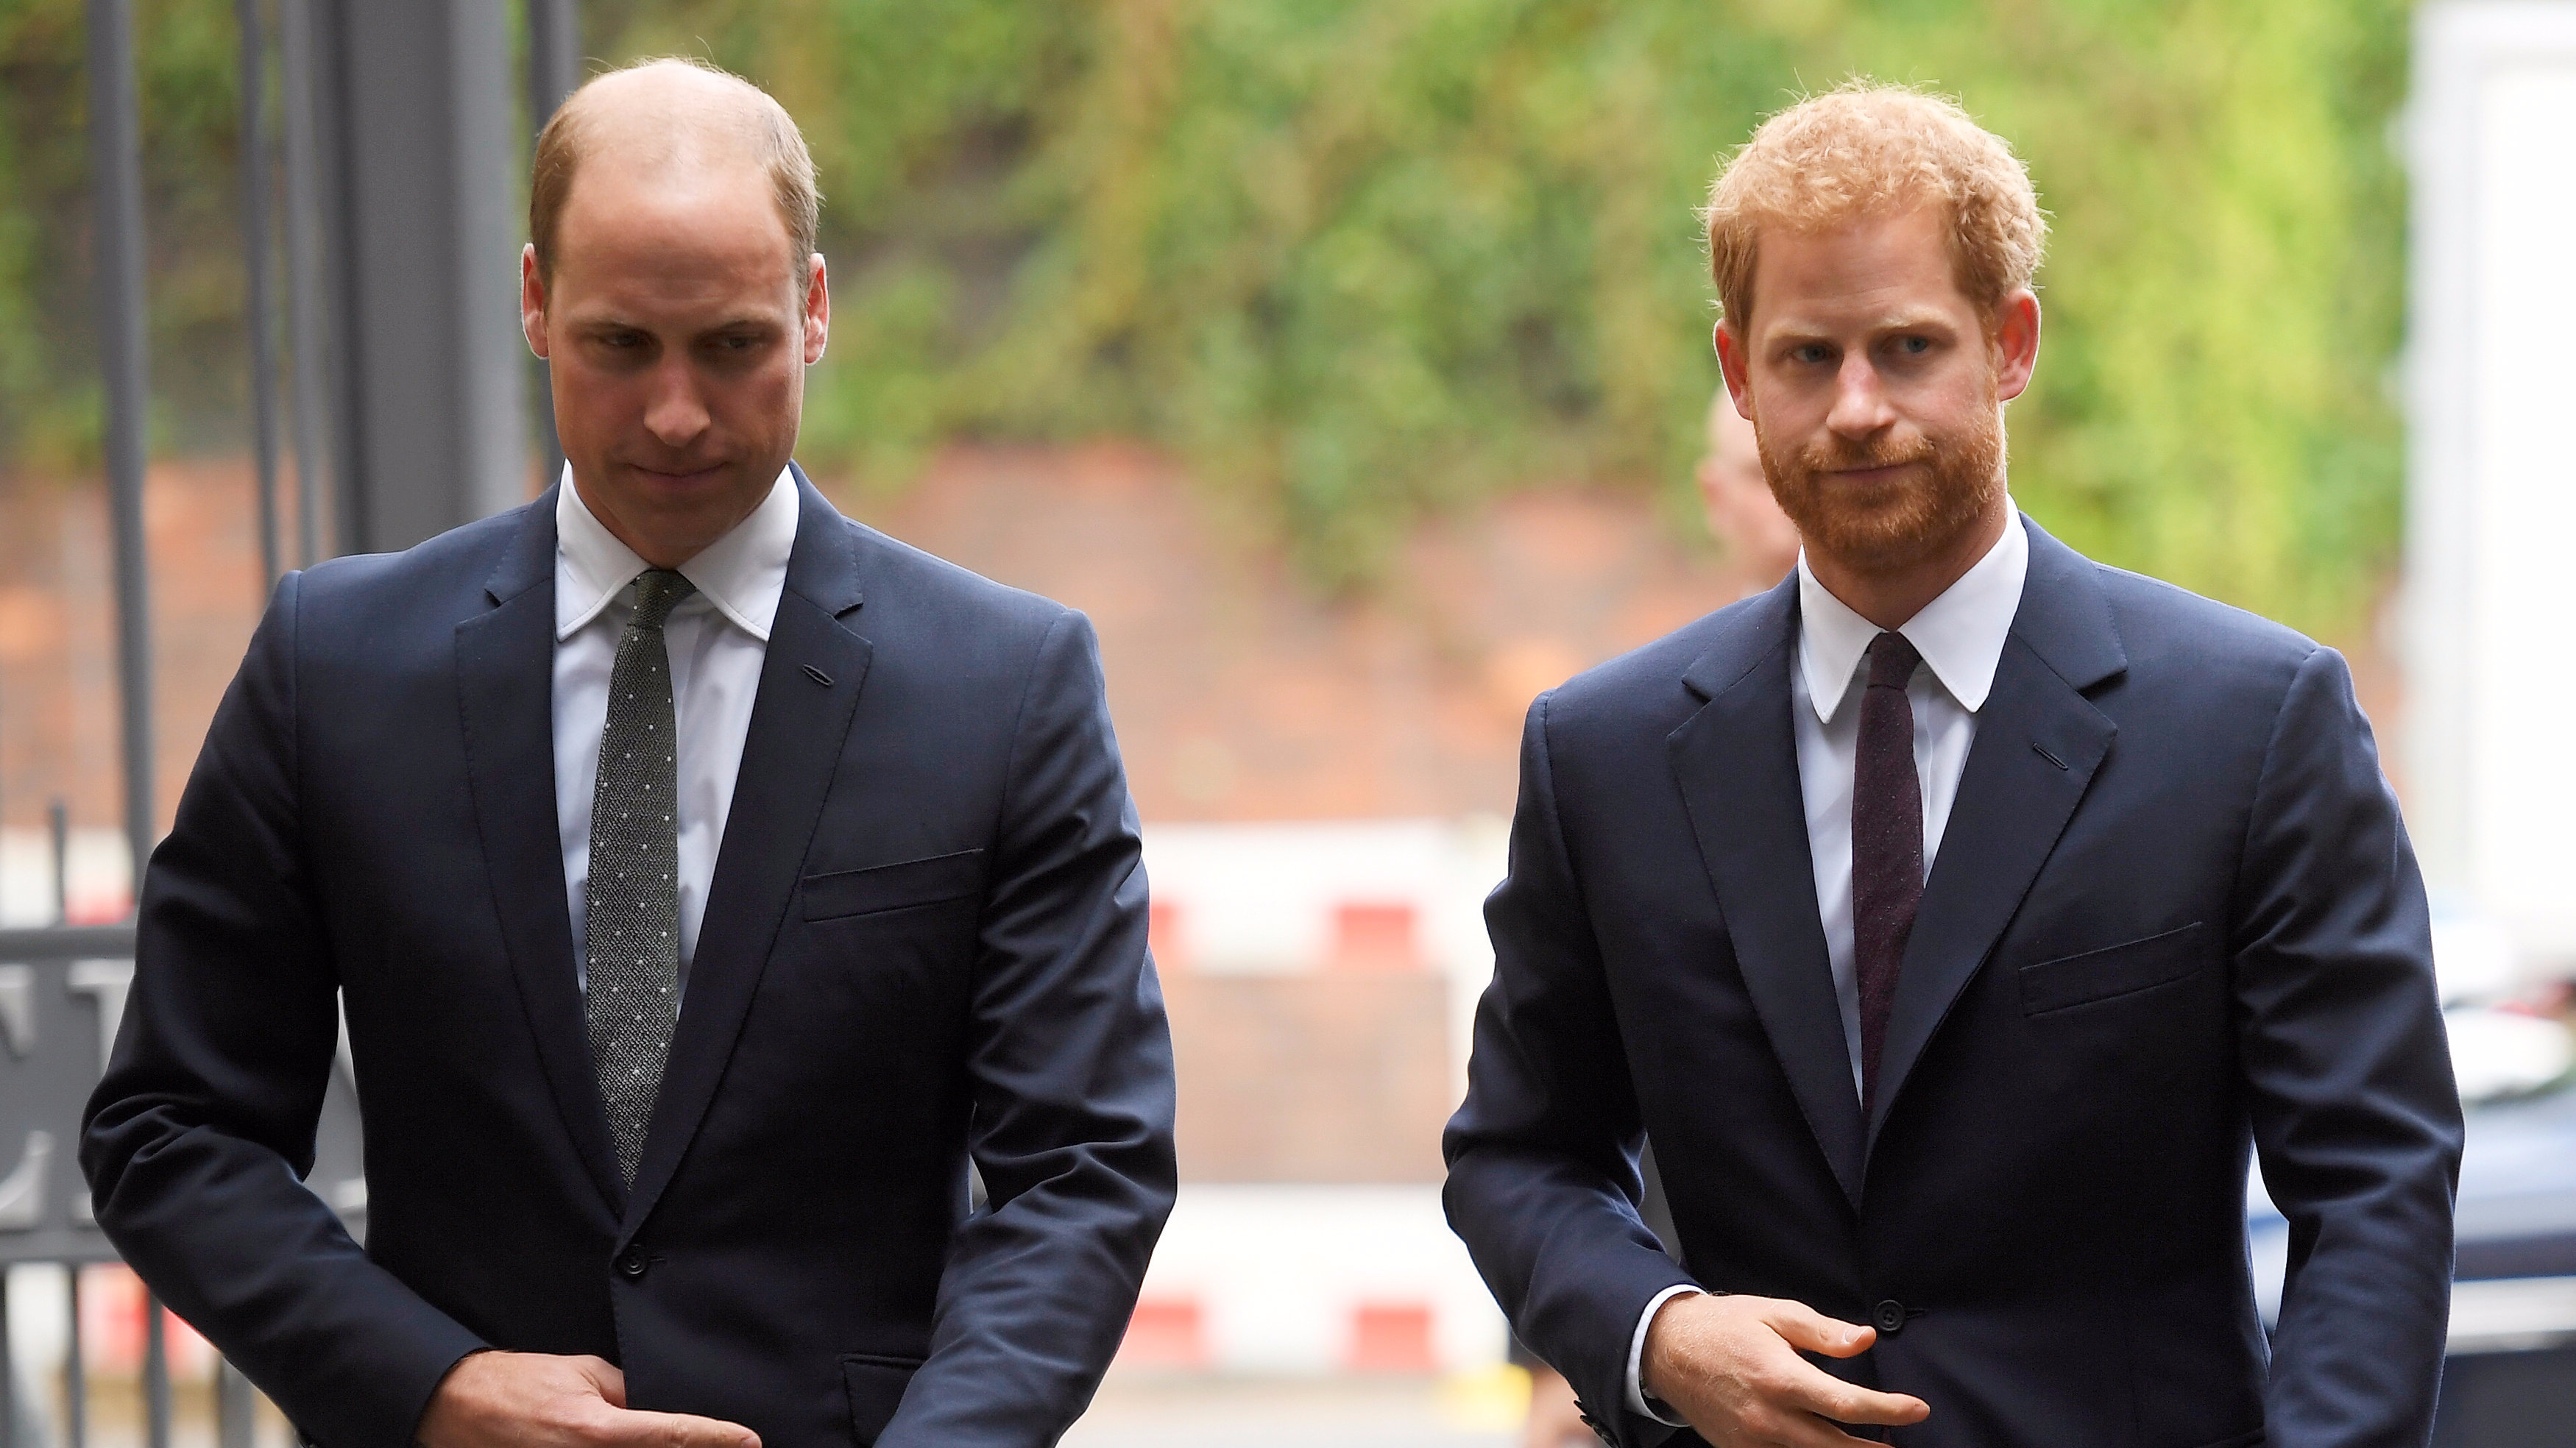 Prince William Might Not Be Prince Harry's Best Man Due To Technicality